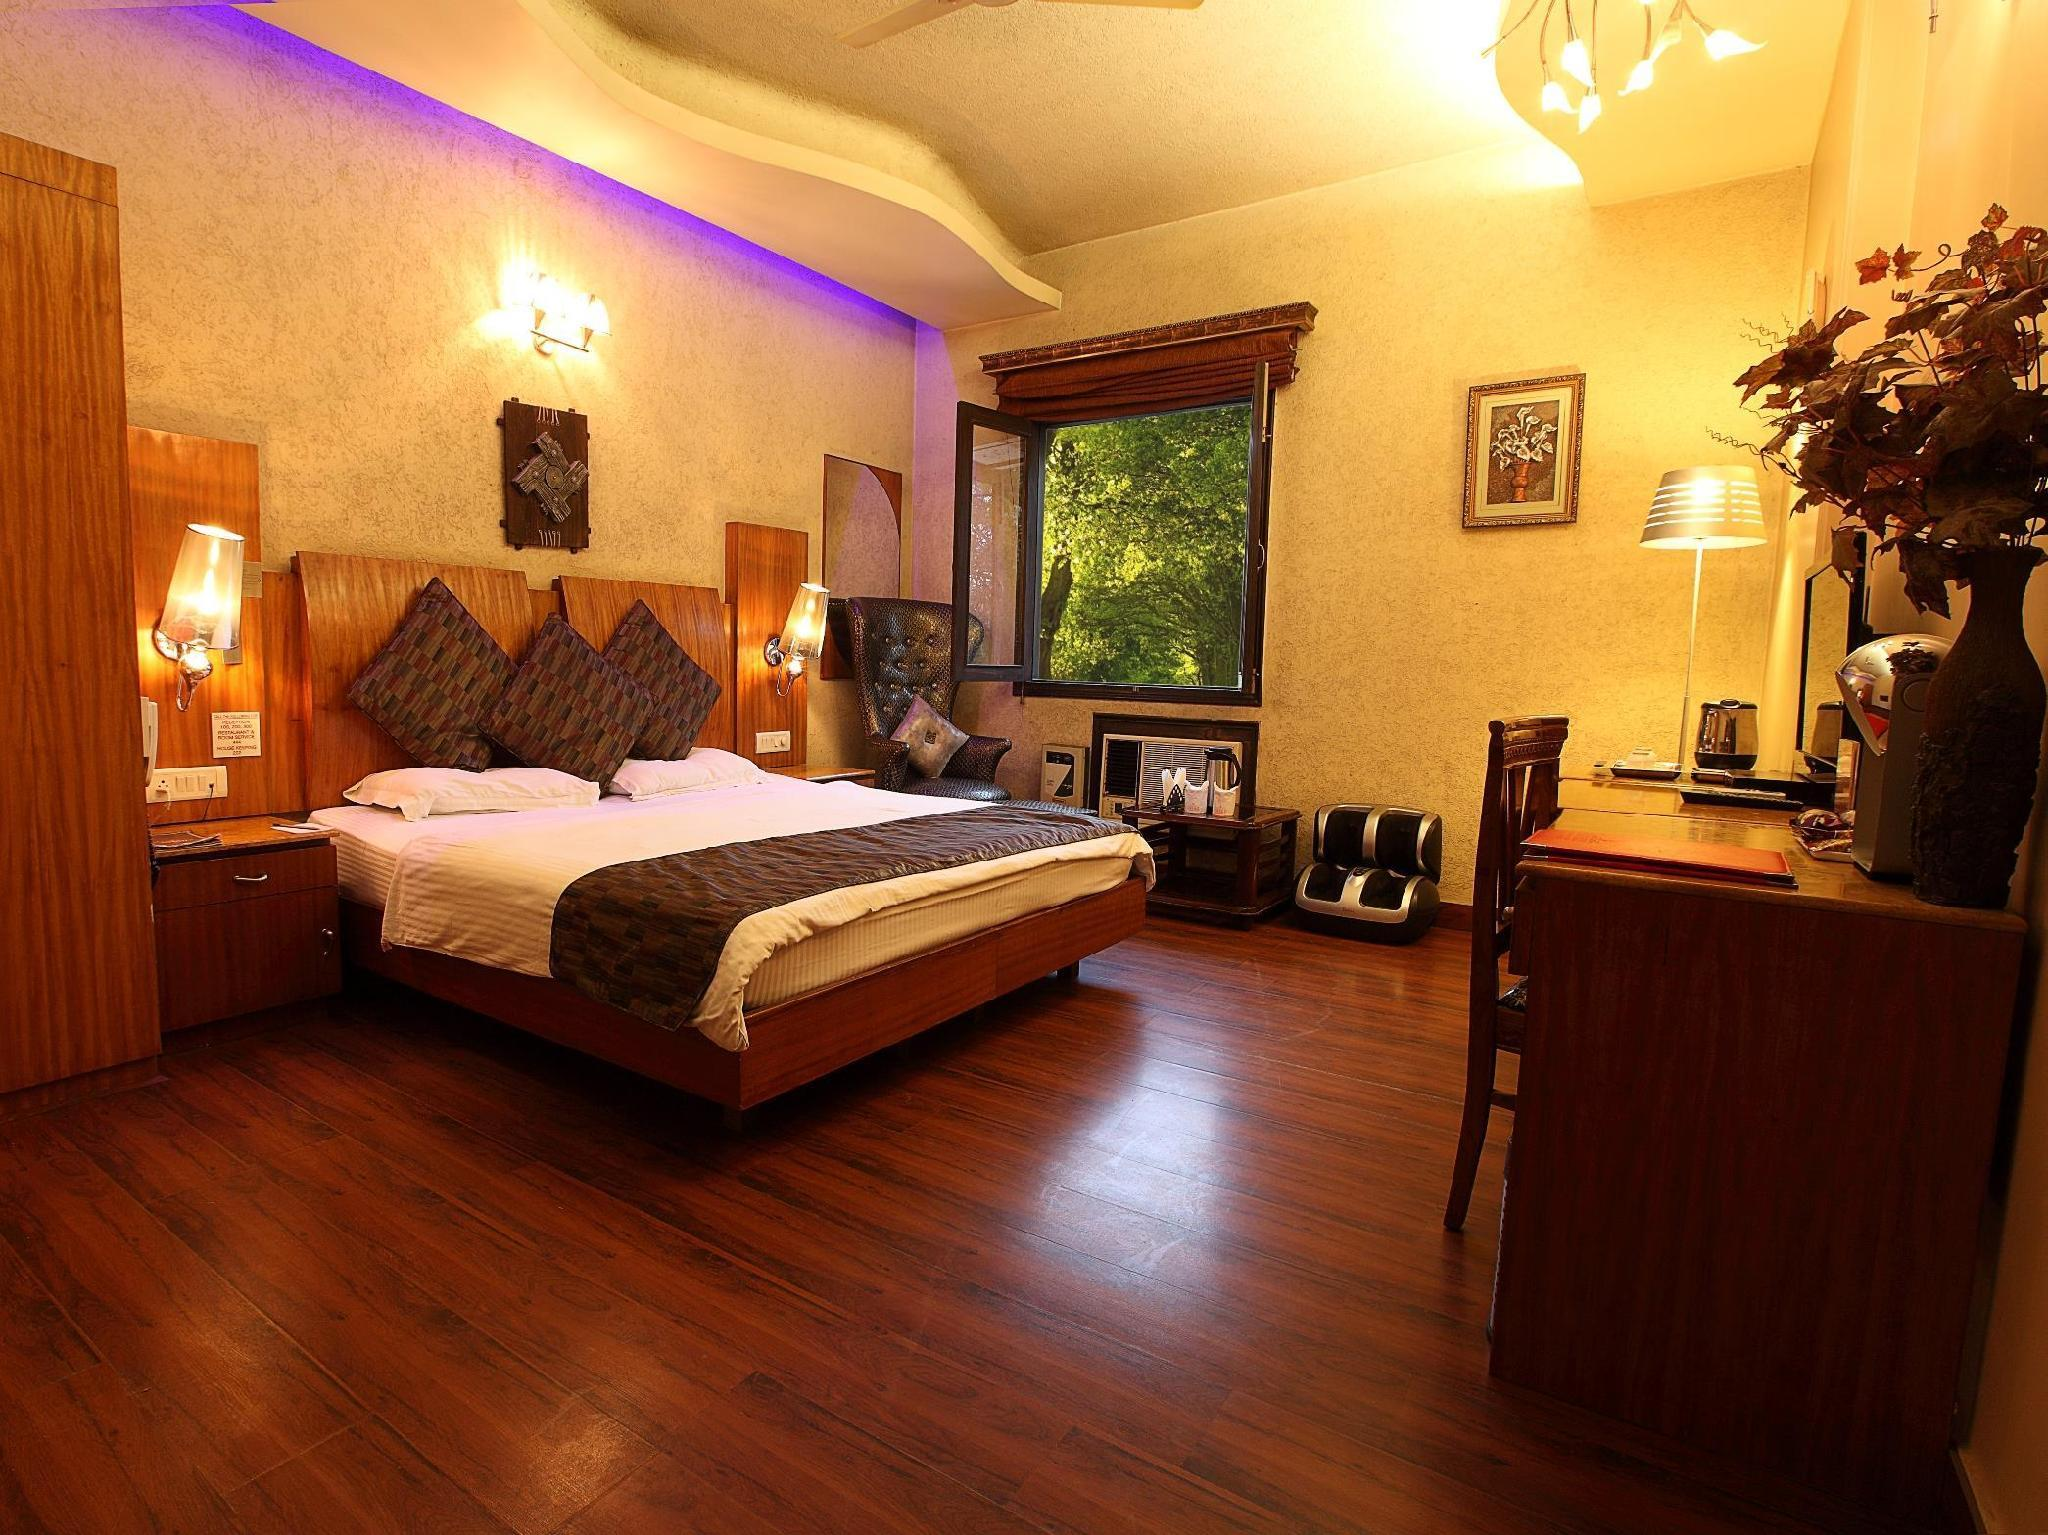 Pokoj typu Superb (Superb Room)